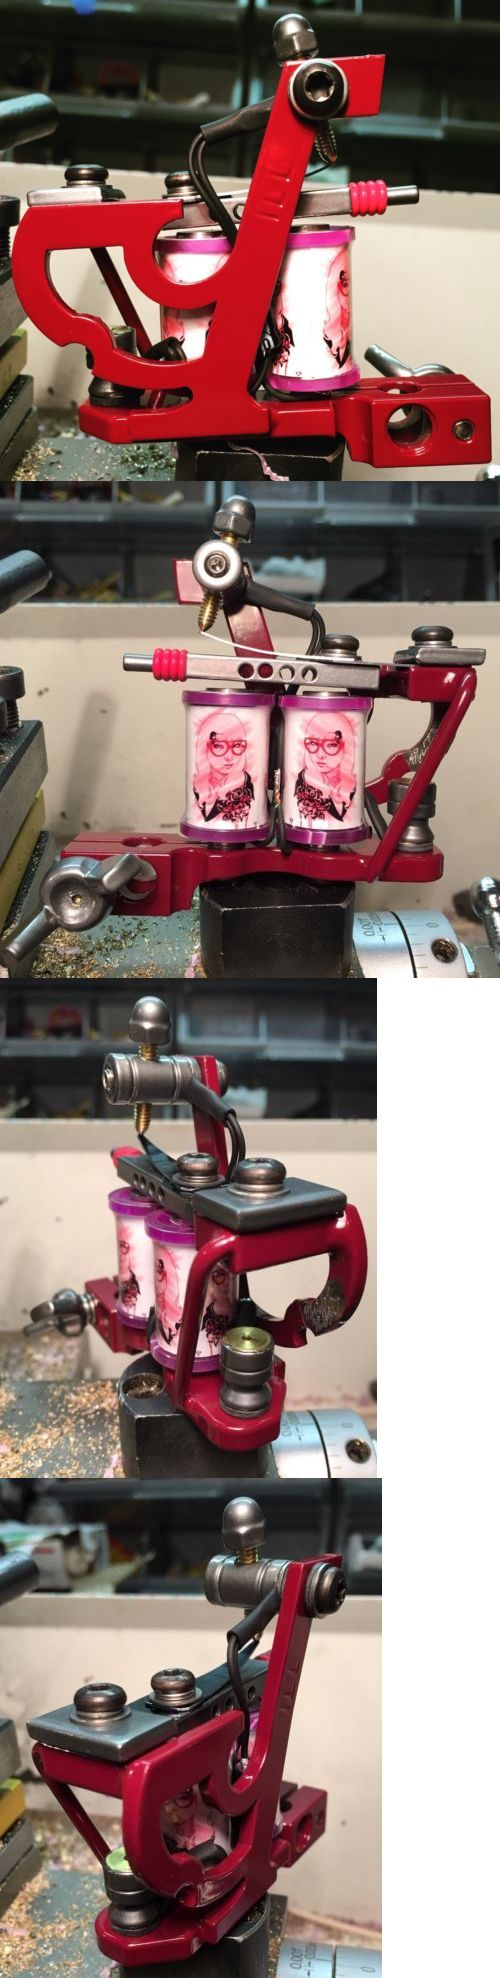 Tattoo Machines and Parts: Illadelphia Irons Tattoo Machine Liner Jay Coil Mike Wolfinger Art Handmade -> BUY IT NOW ONLY: $210.0 on eBay!